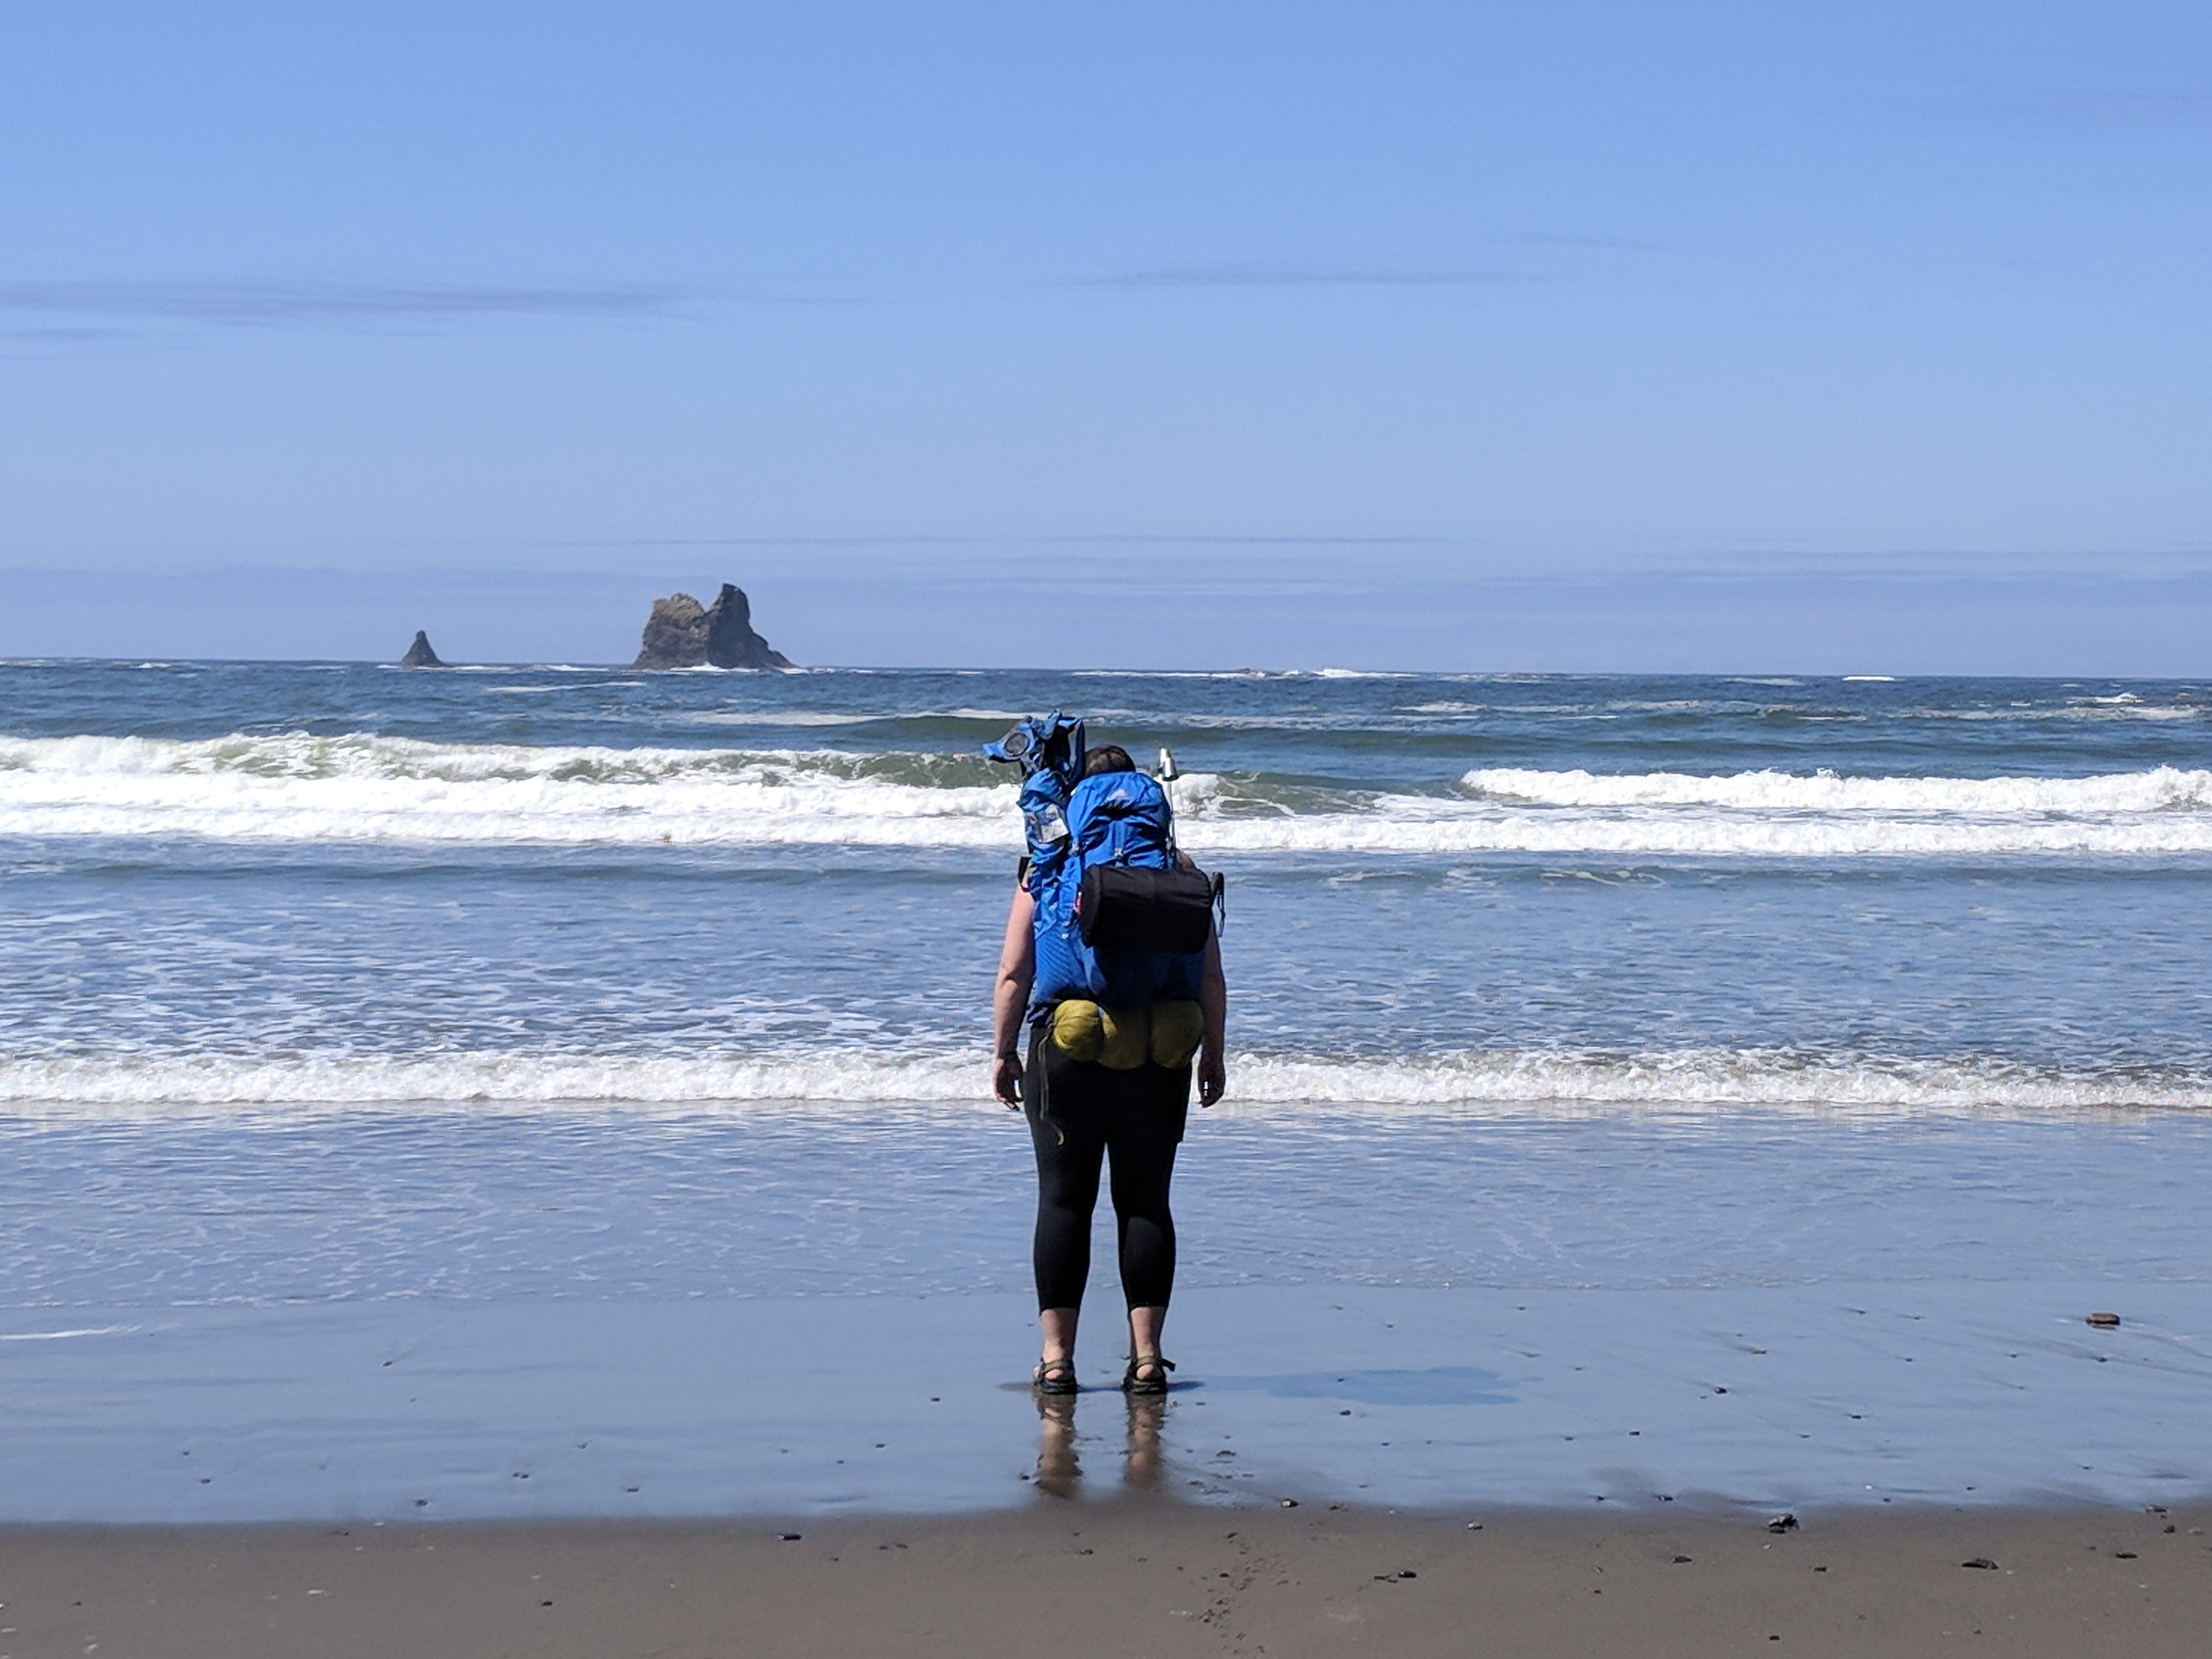 camping without a car in La Push, Washington